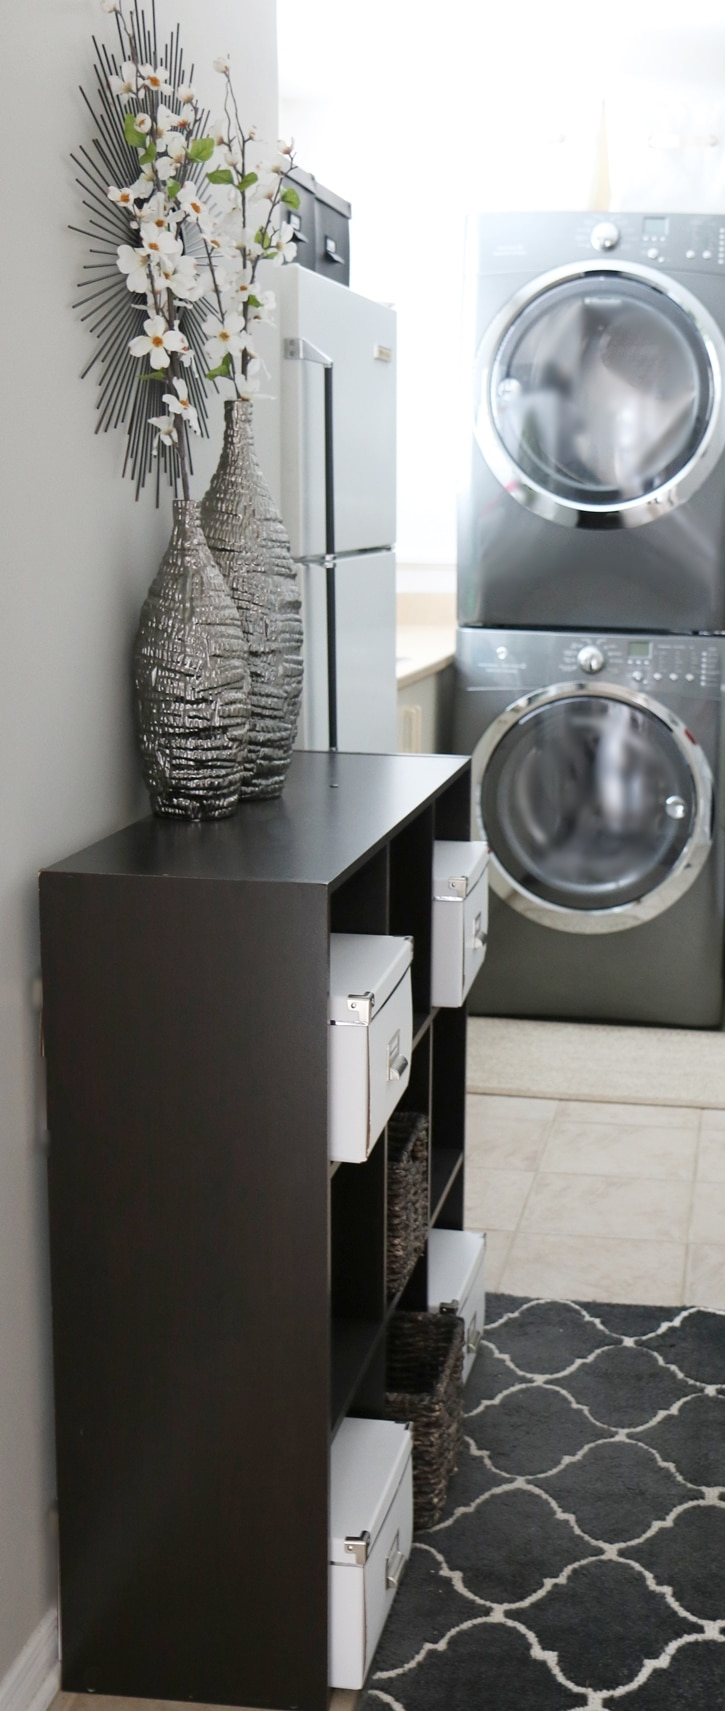 laundry-room-organization-storage-shelving